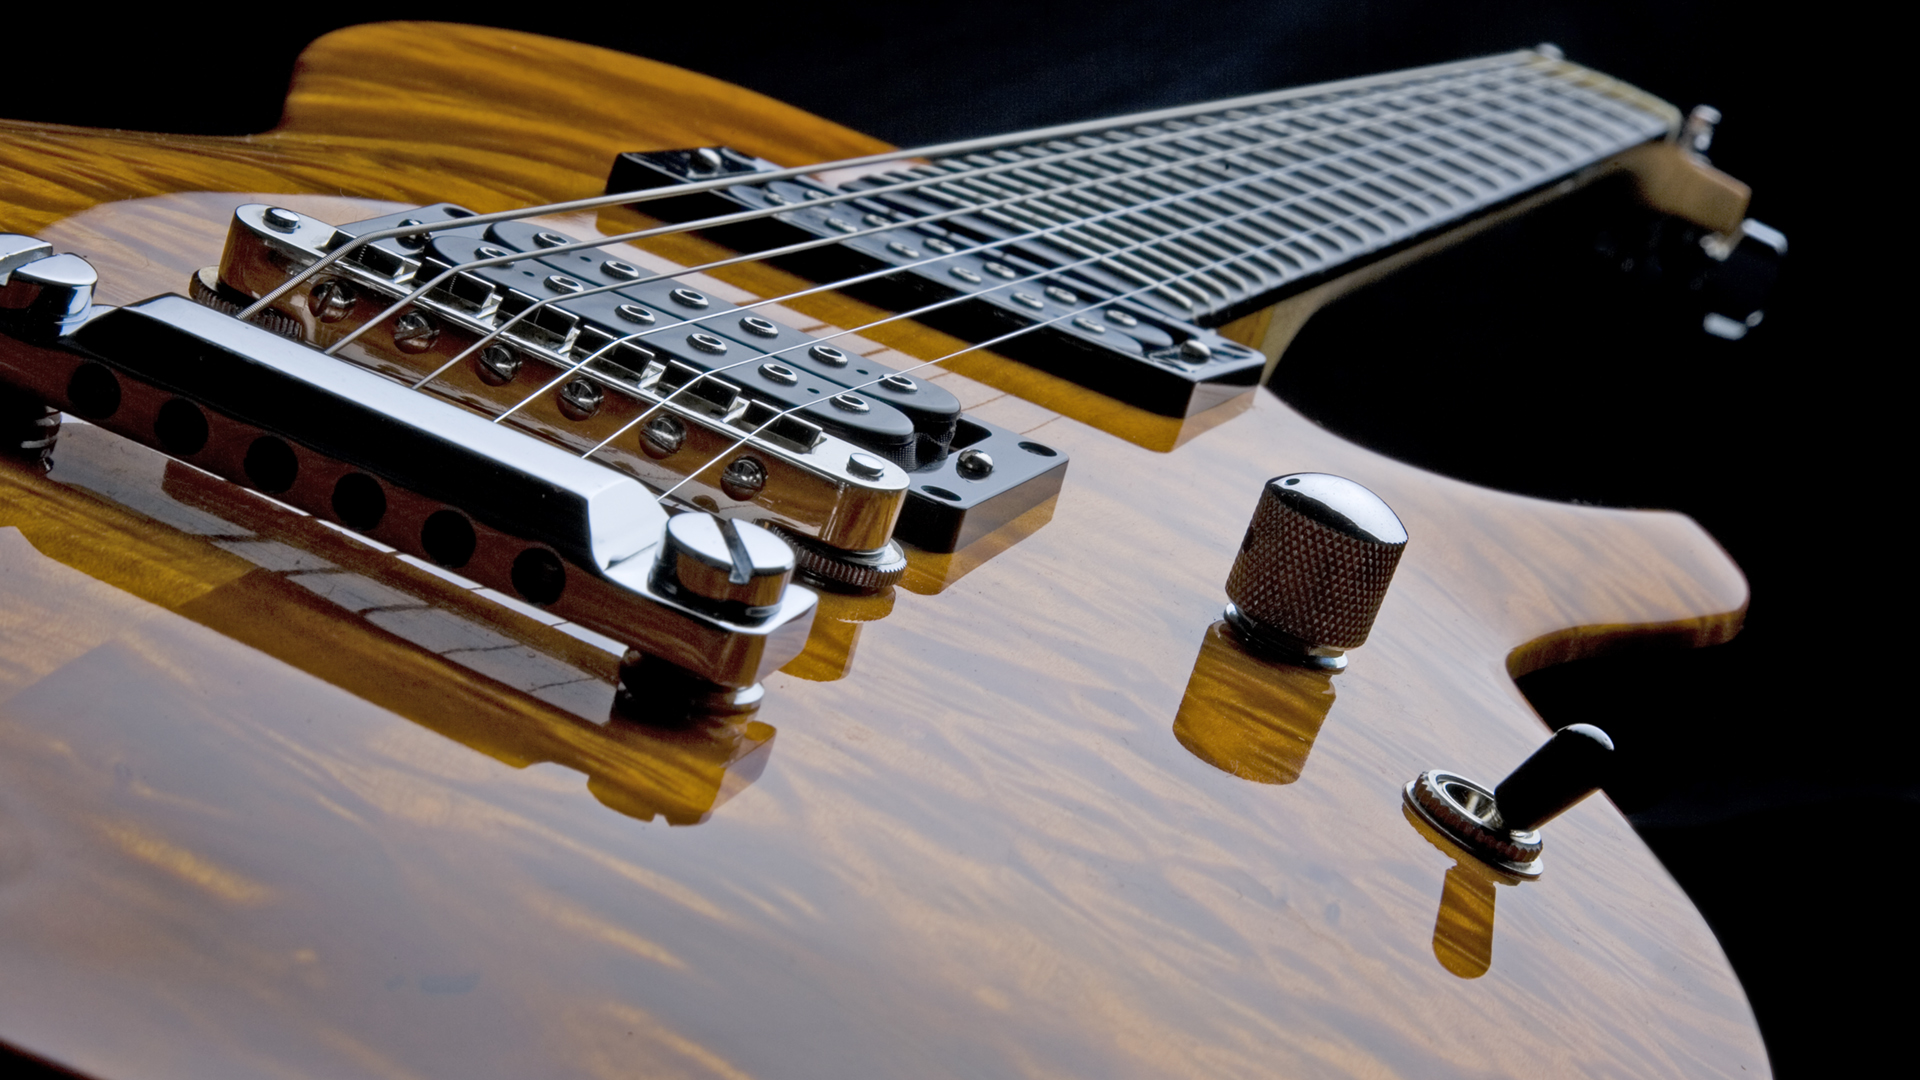 Hand made guitar all rights reserved by Sietinga Fotografie the Netherlands